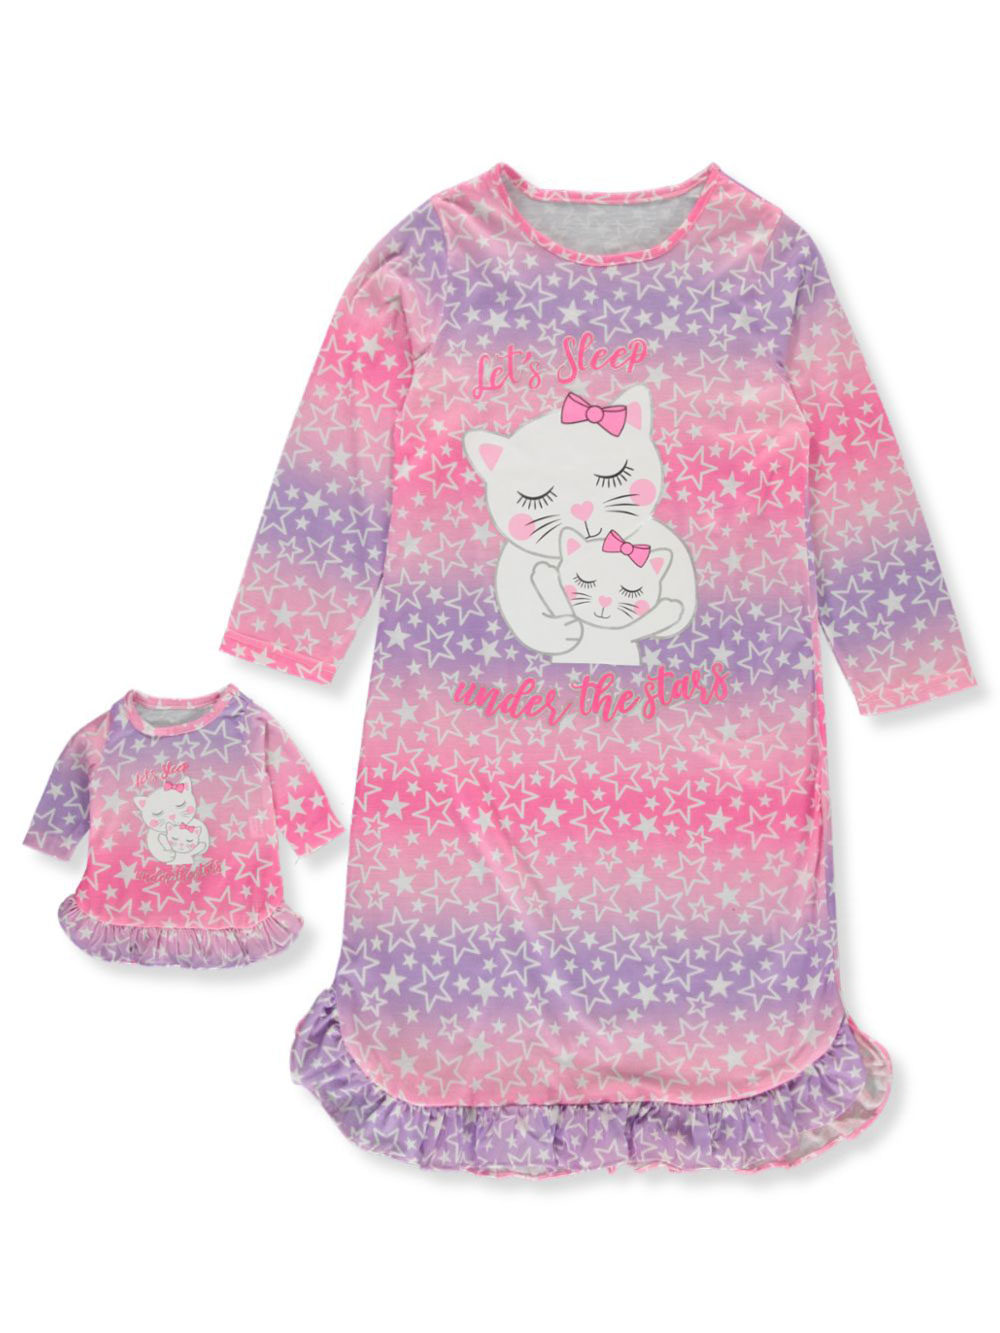 Girls Fashion Nightgown with Doll Outfit